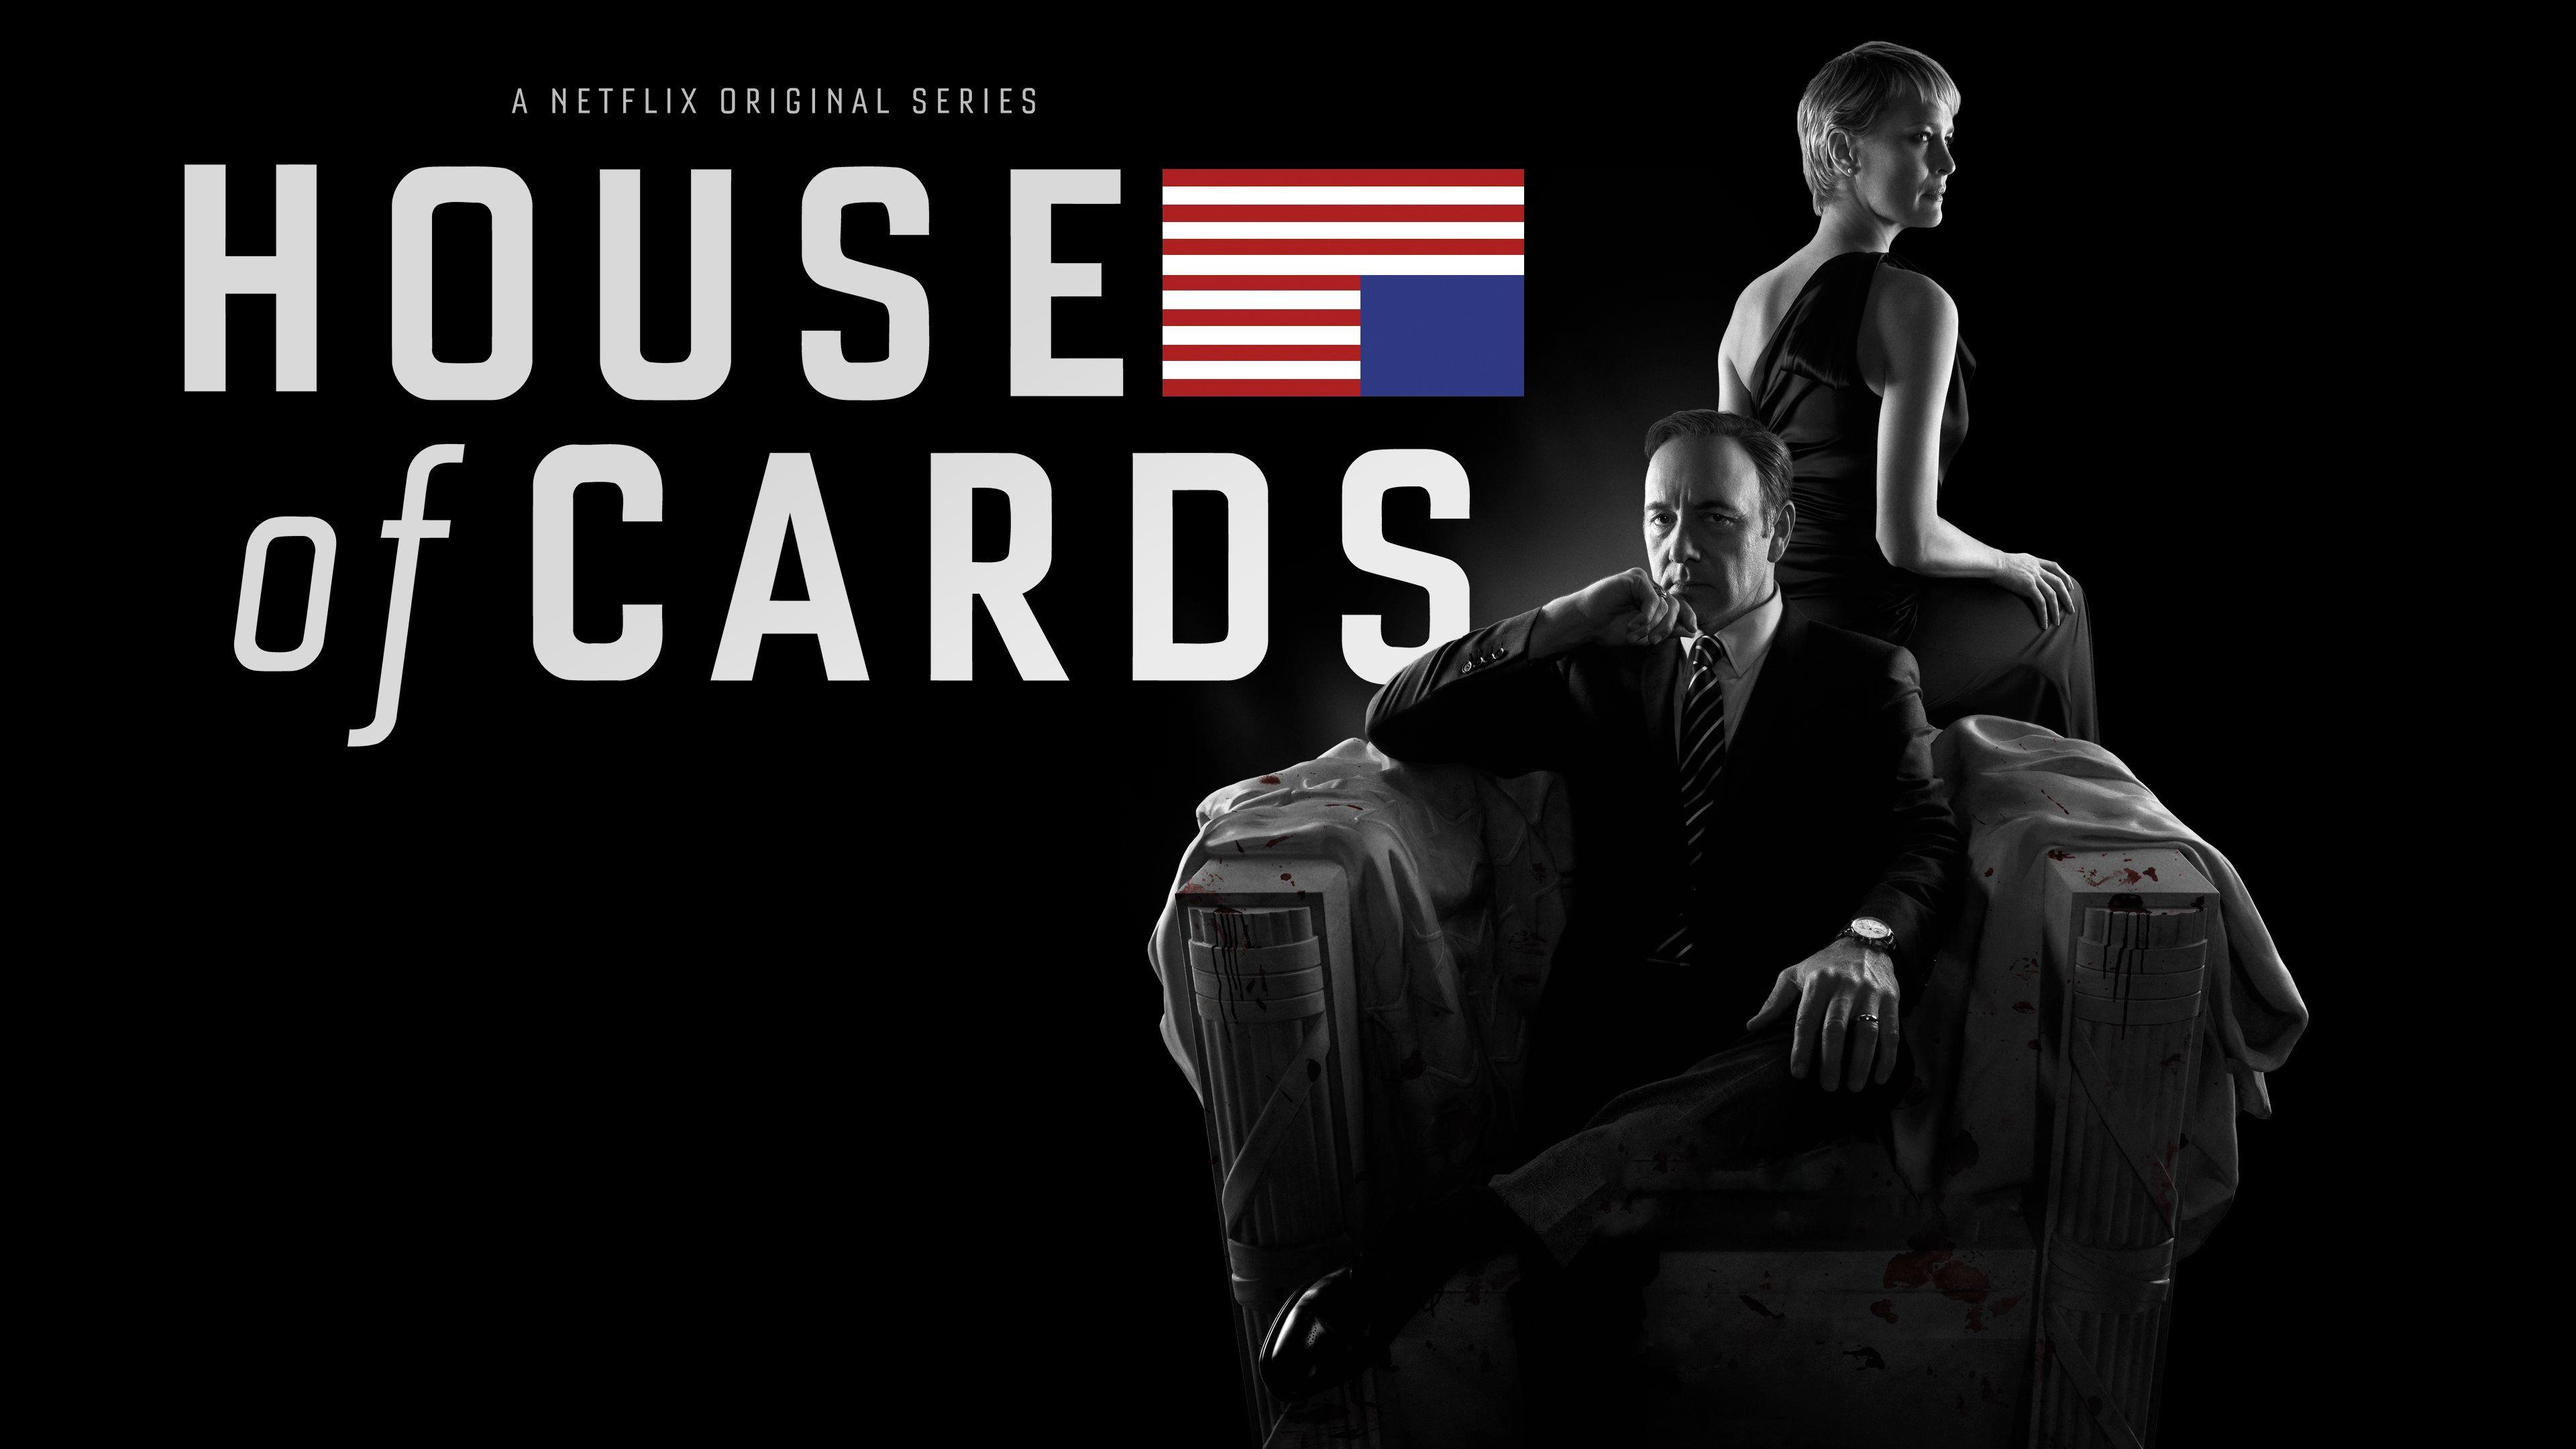 House of Cards Wallpapers · 4K HD Desktop Backgrounds Phone Image